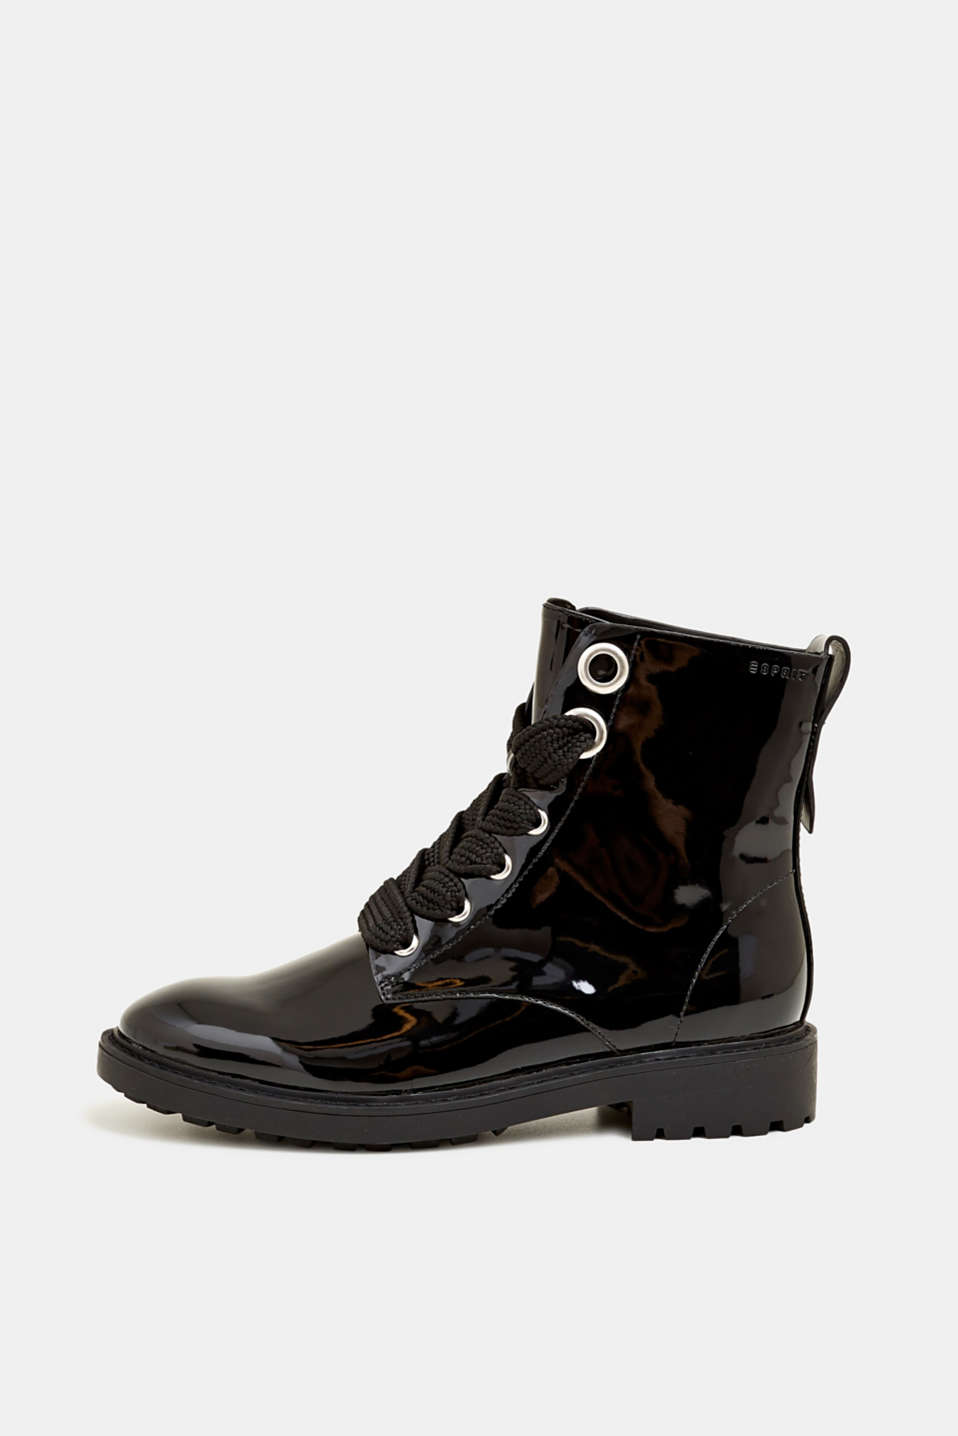 Esprit - Veterboots in gelakte look